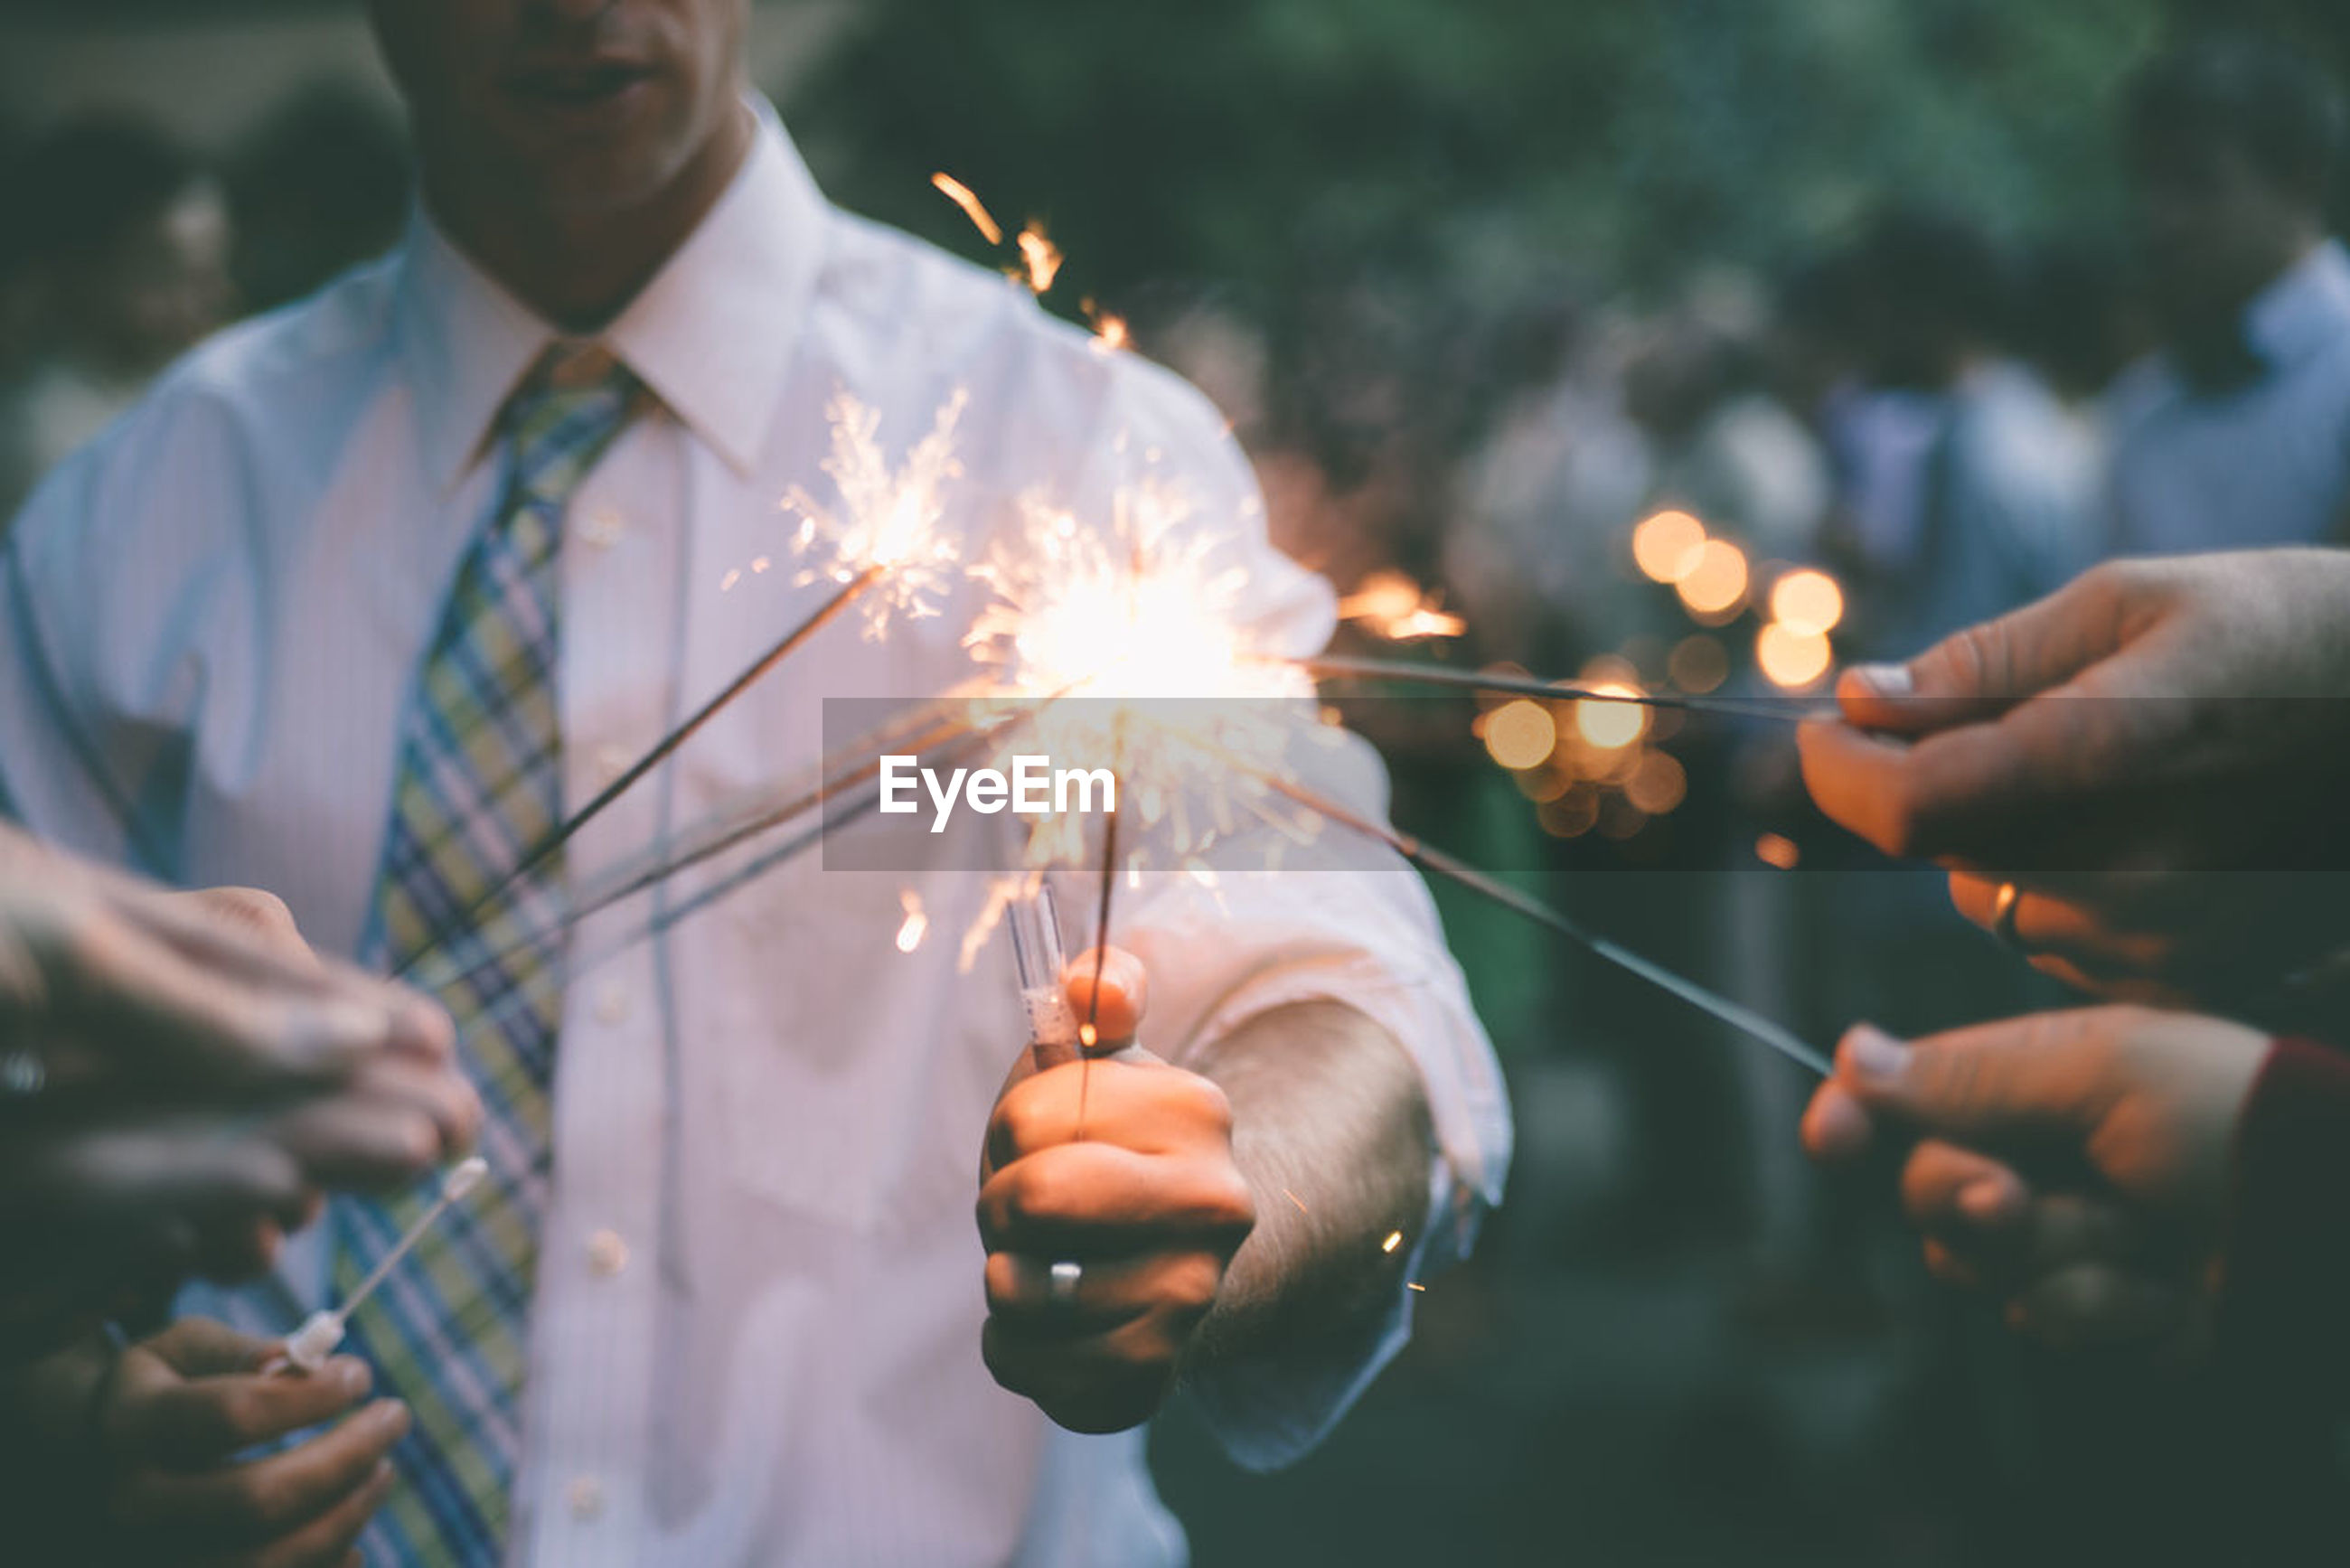 burning, holding, real people, event, celebration, sparkler, human hand, illuminated, glowing, focus on foreground, men, hand, people, fire, lifestyles, fire - natural phenomenon, motion, leisure activity, nature, sparks, firework, outdoors, firework - man made object